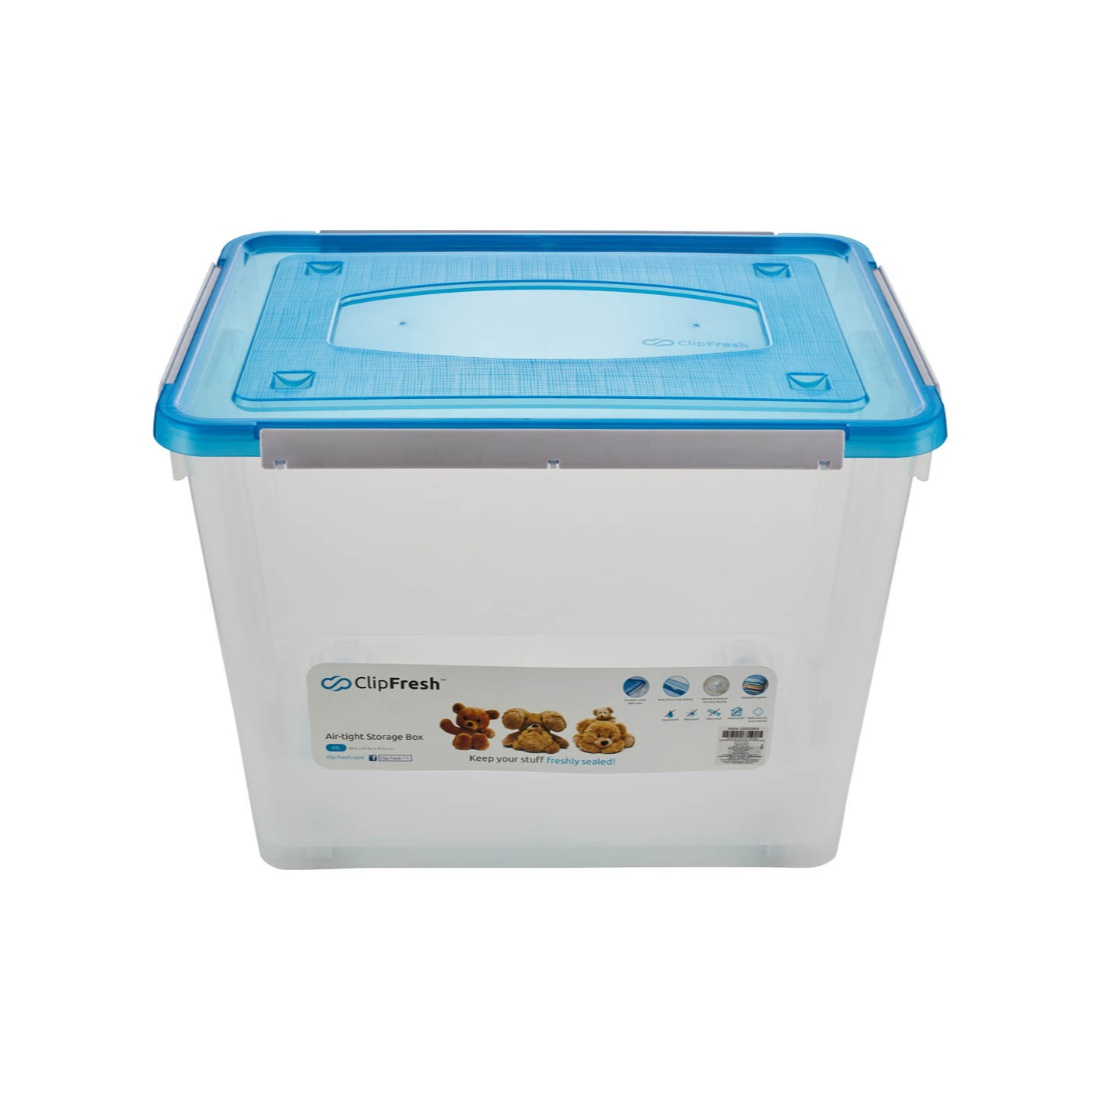 Clip Fresh Storage Box Ltr. Wheel Plastic Kitchen Storage in Translucent With Blue Lid Colour by Living Essence